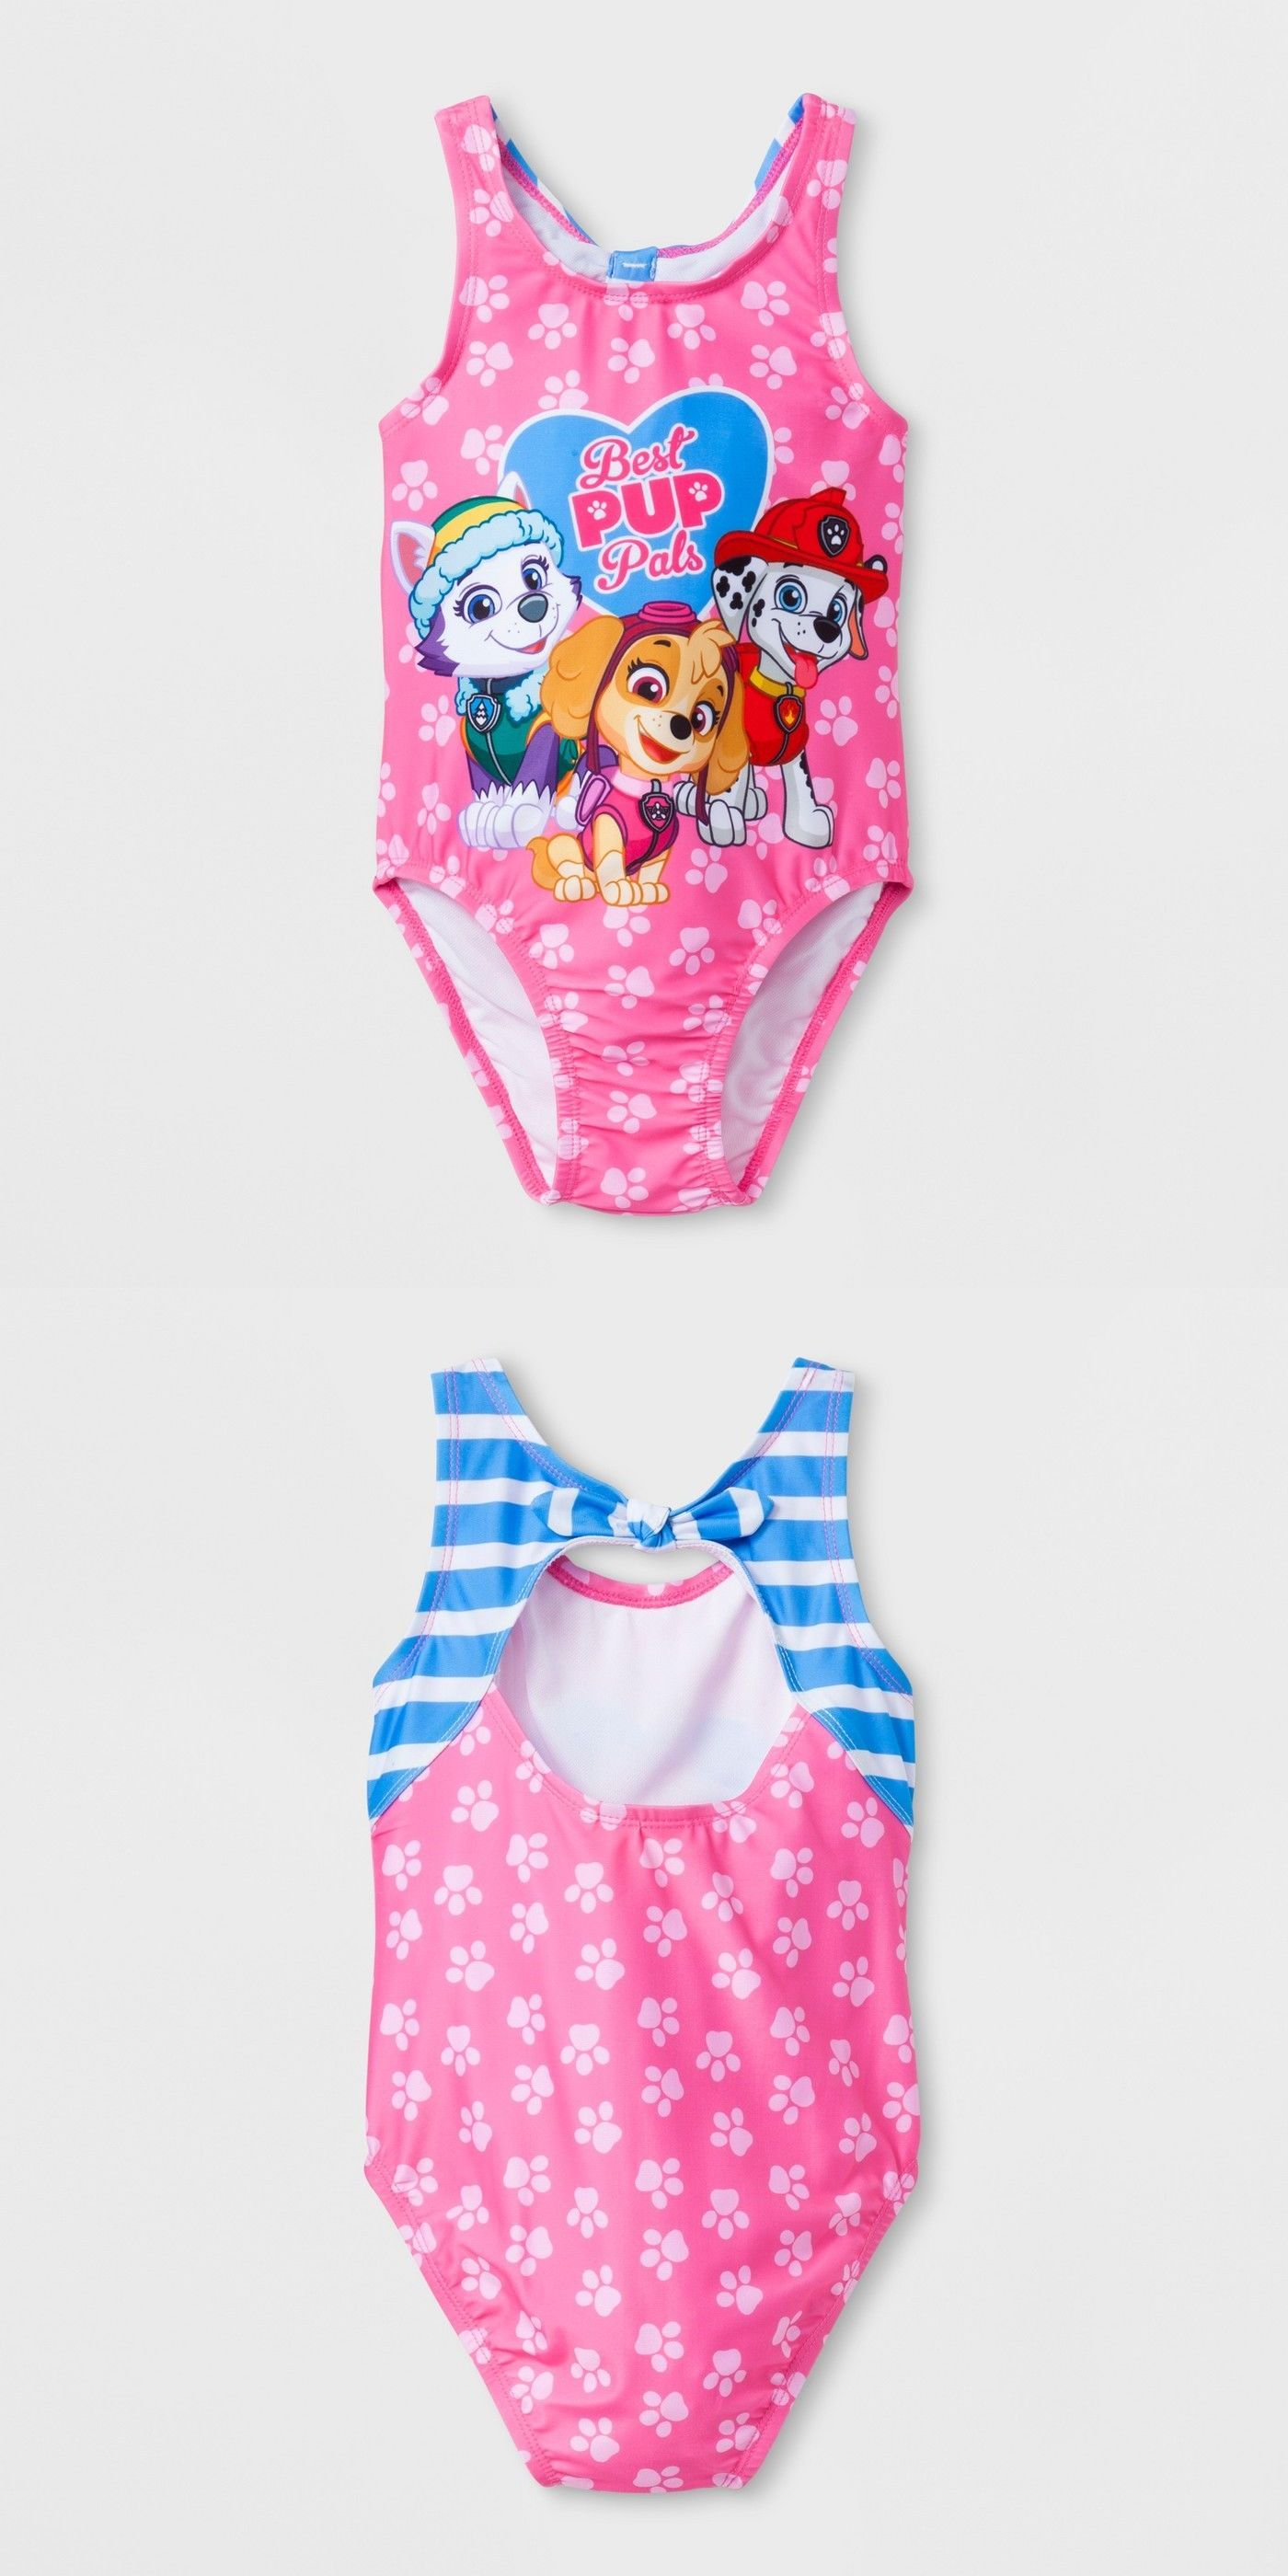 573a98a29f Other Newborn-5T Girls Clothes 147221: Paw Patrol Girls Swimsuit Nwt Size 2  3 4 5 T Best Pup Pals Pink -> BUY IT NOW ONLY: $14.99 on #eBay #other #girls  ...